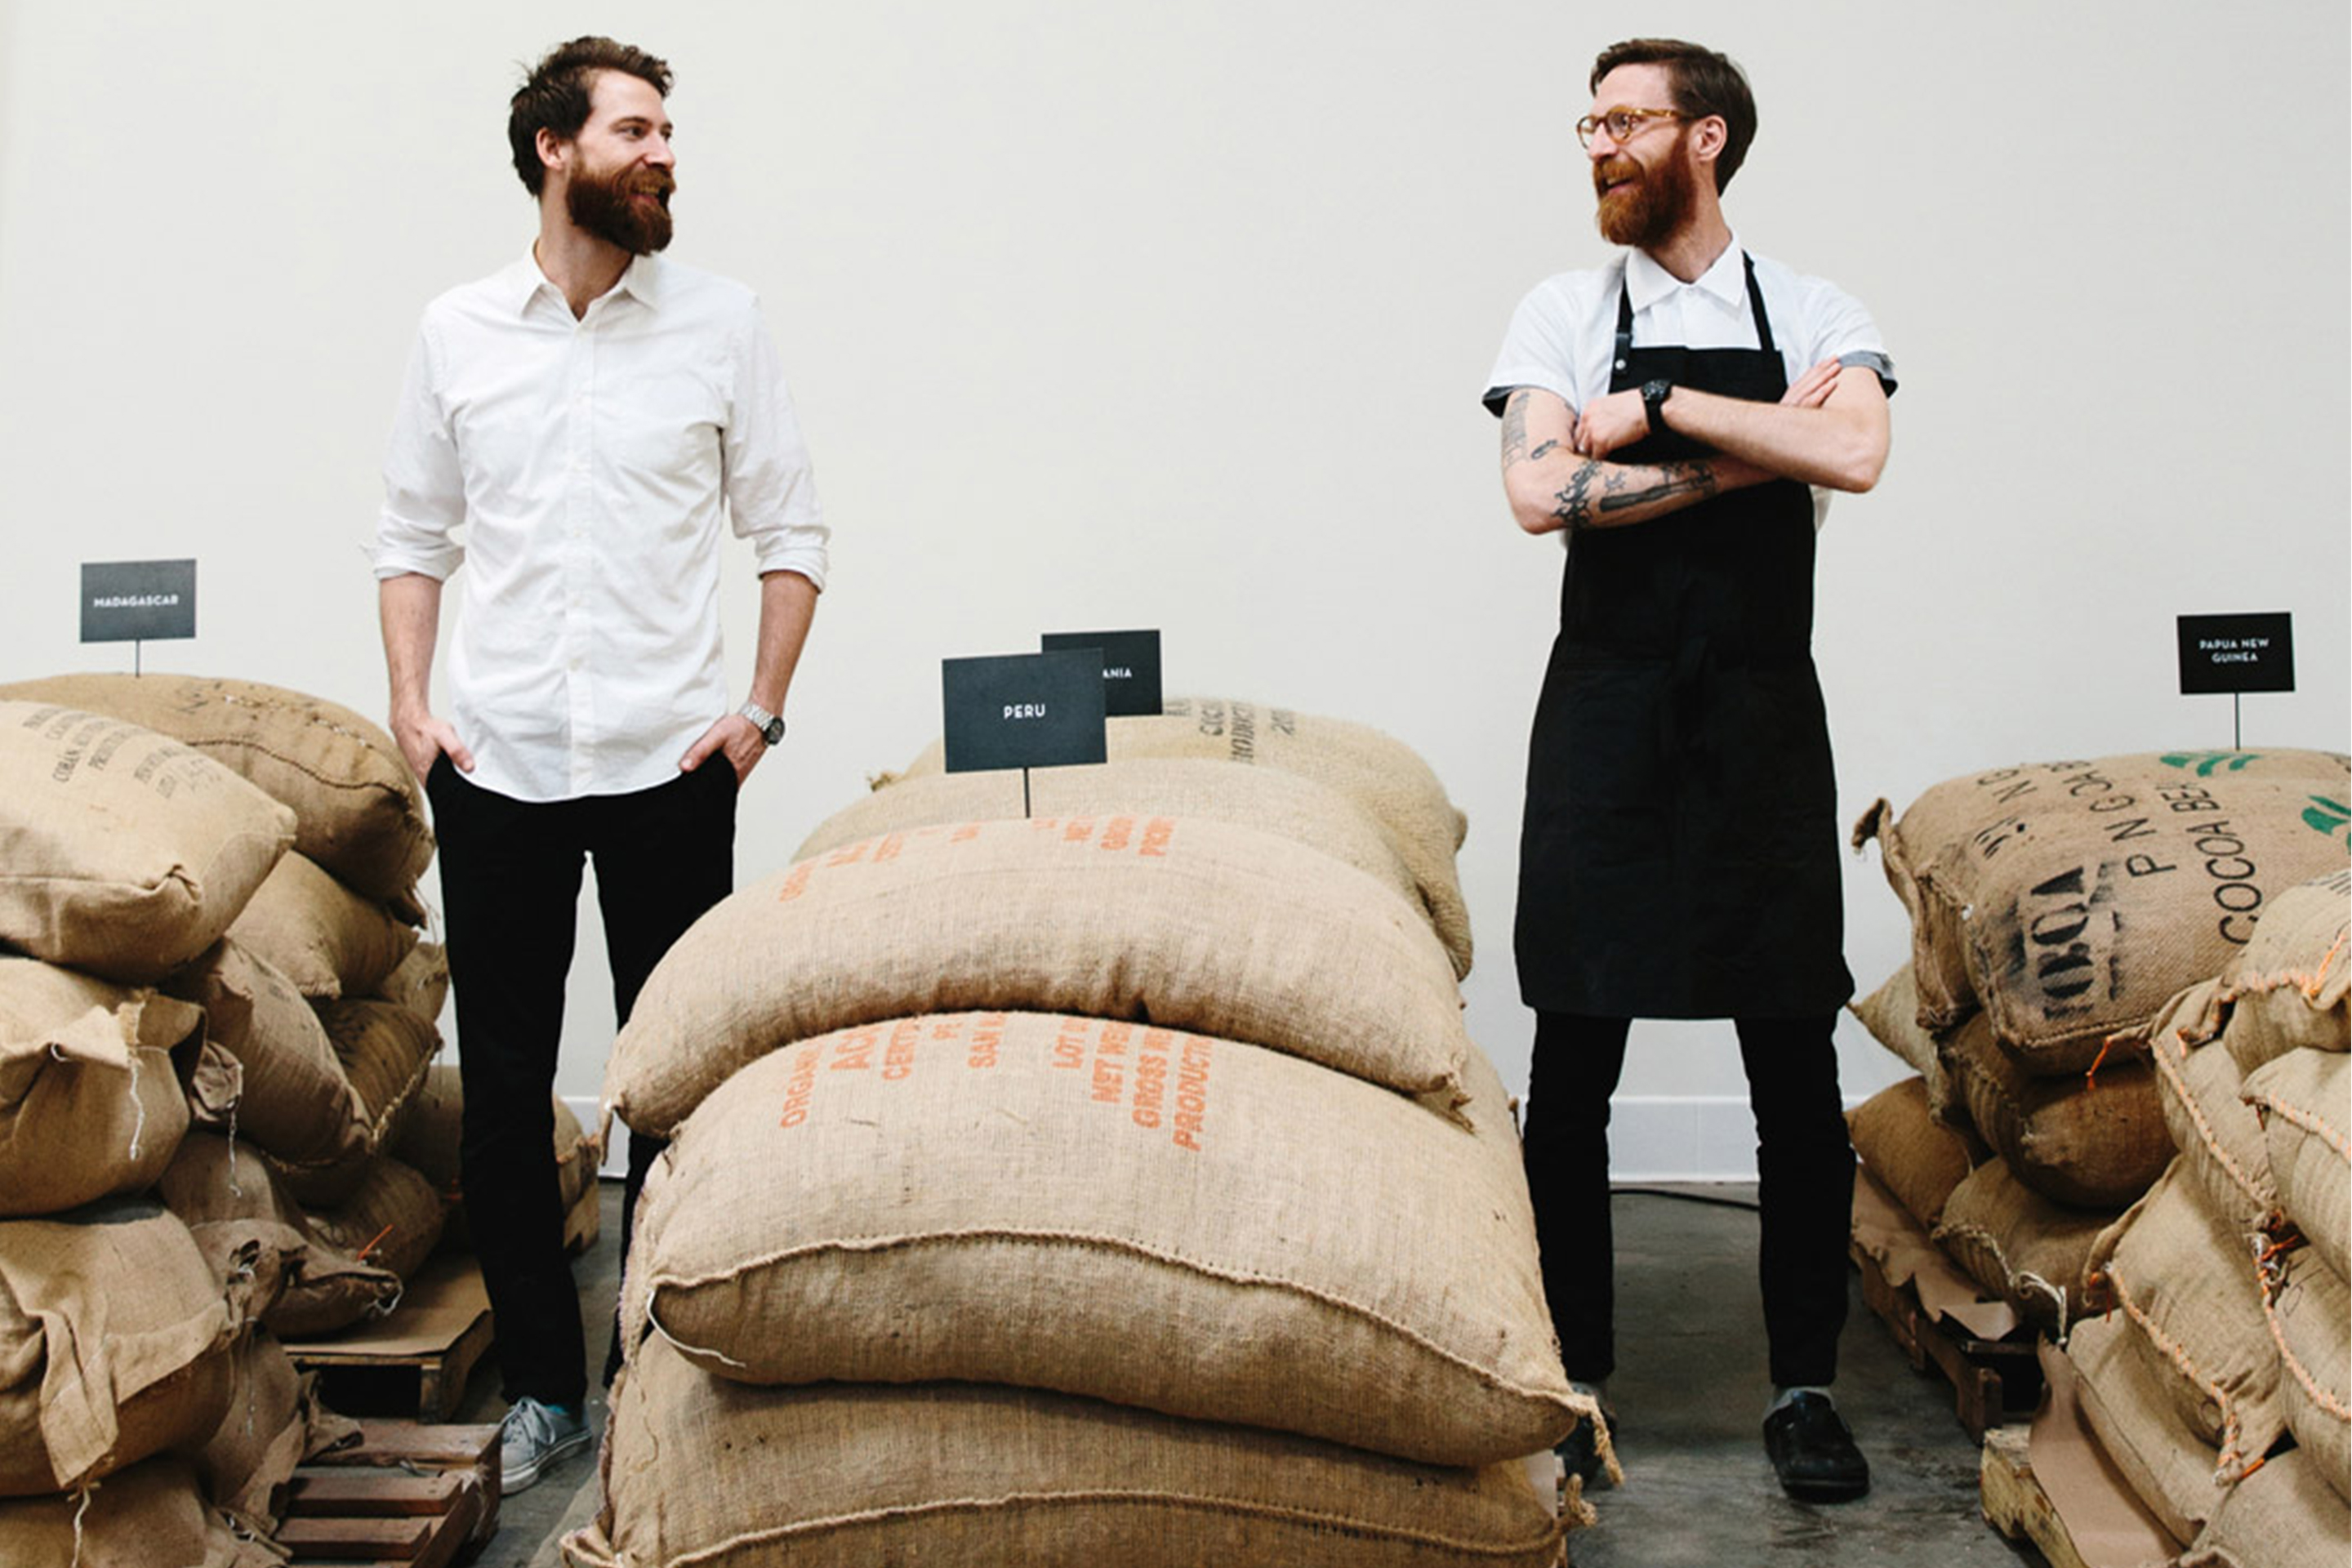 Mast Brothers, a Brooklyn-based craft chocolate maker, was founded in 2007 by brothers Michael and Rick Mast.